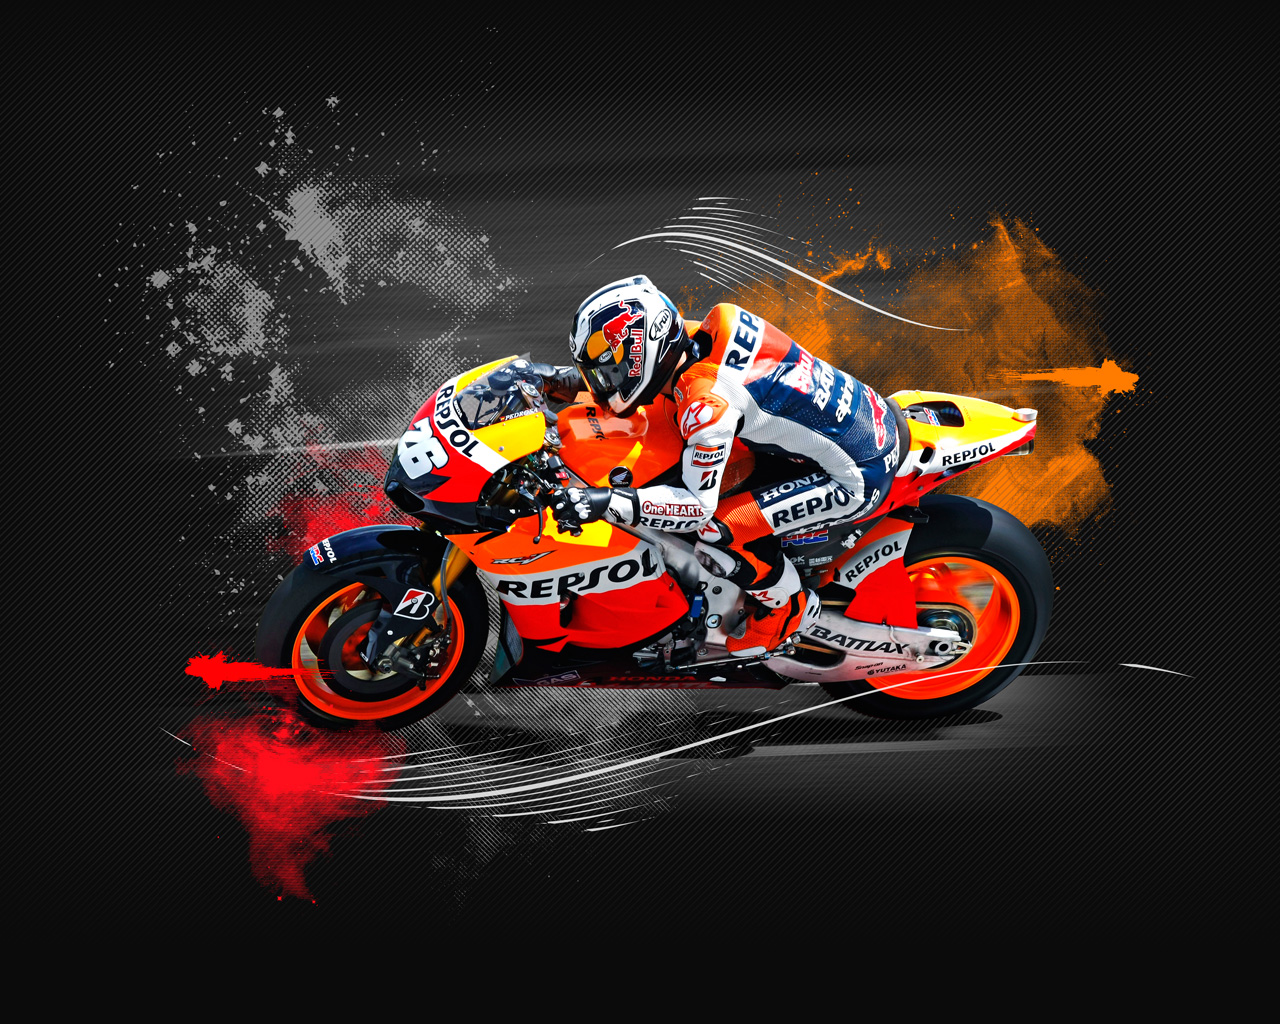 nissan serena wallpaper with Motogp Dani Pedrosa Wallpaper 1 on Nissan Laurel C130 1 together with Ch ions League Schedule Fixtuers 2016 2017 Bangladesh India Usa Time Table further 296203 Navel Oranges Season in addition Motogp Dani Pedrosa Wallpaper 1 also Nissan 350z Modified For Sale 3.